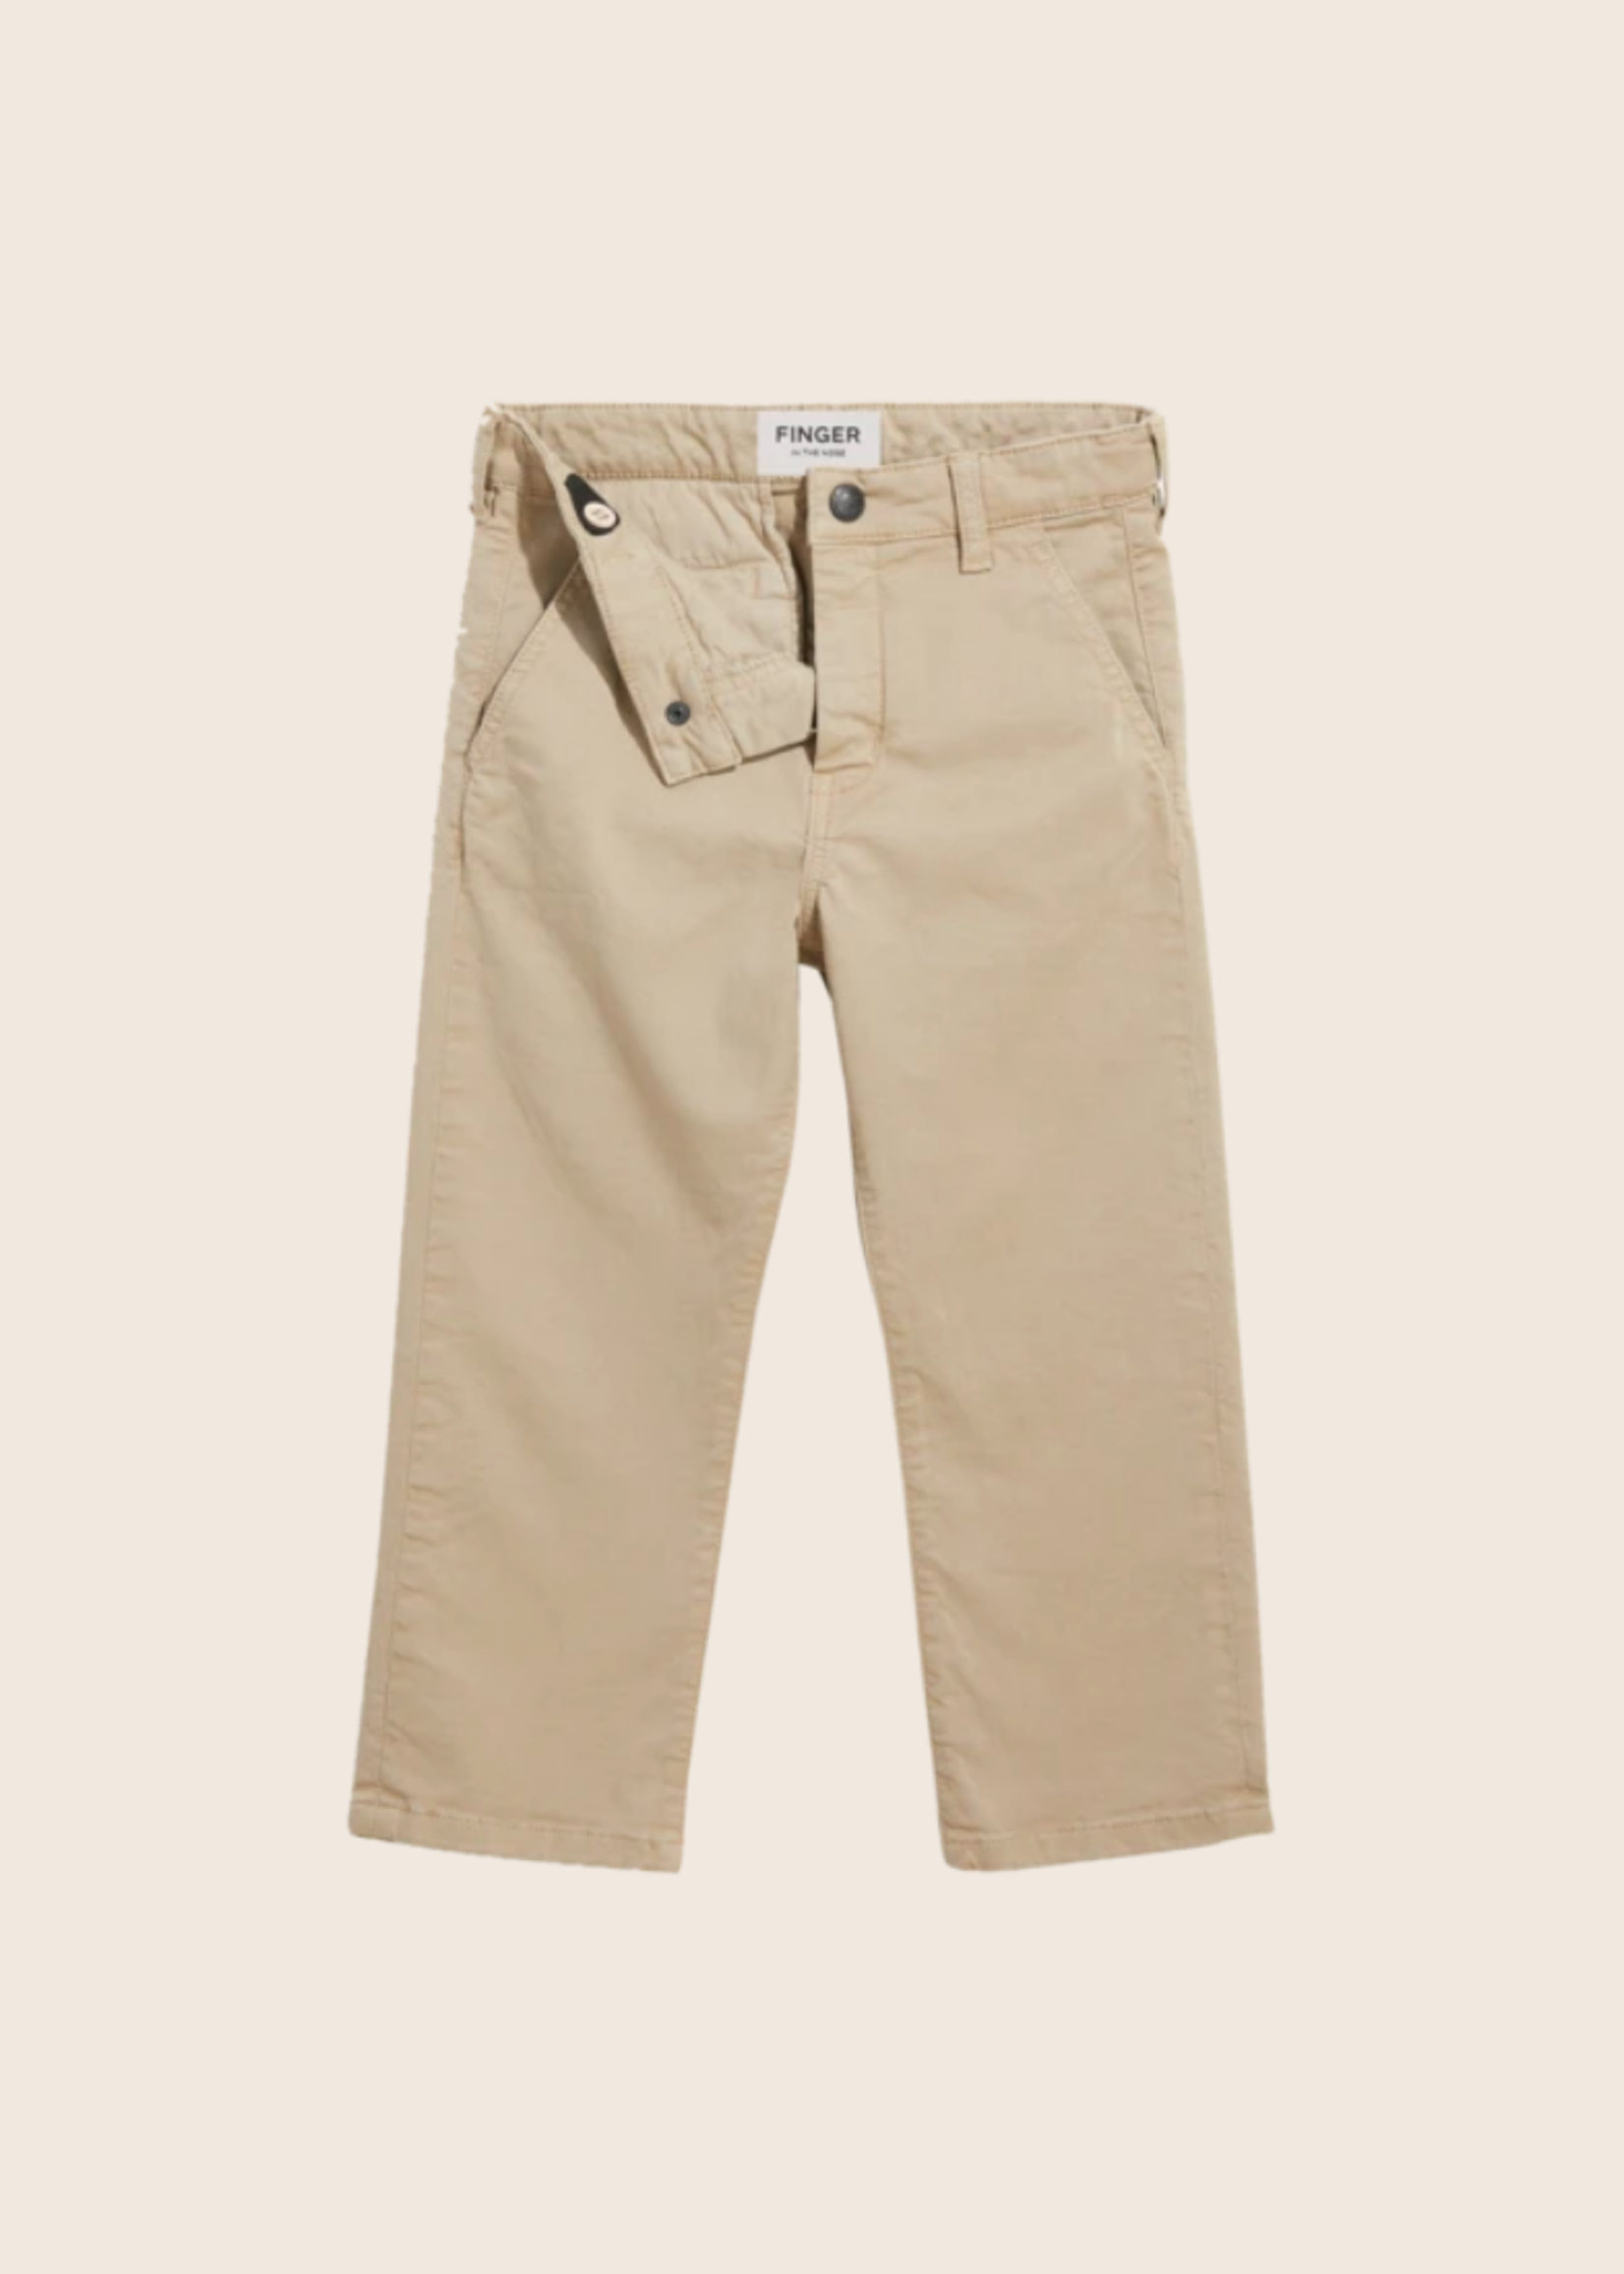 FINGER IN THE NOSE PORTMAN Sand - Chino Fit Pants